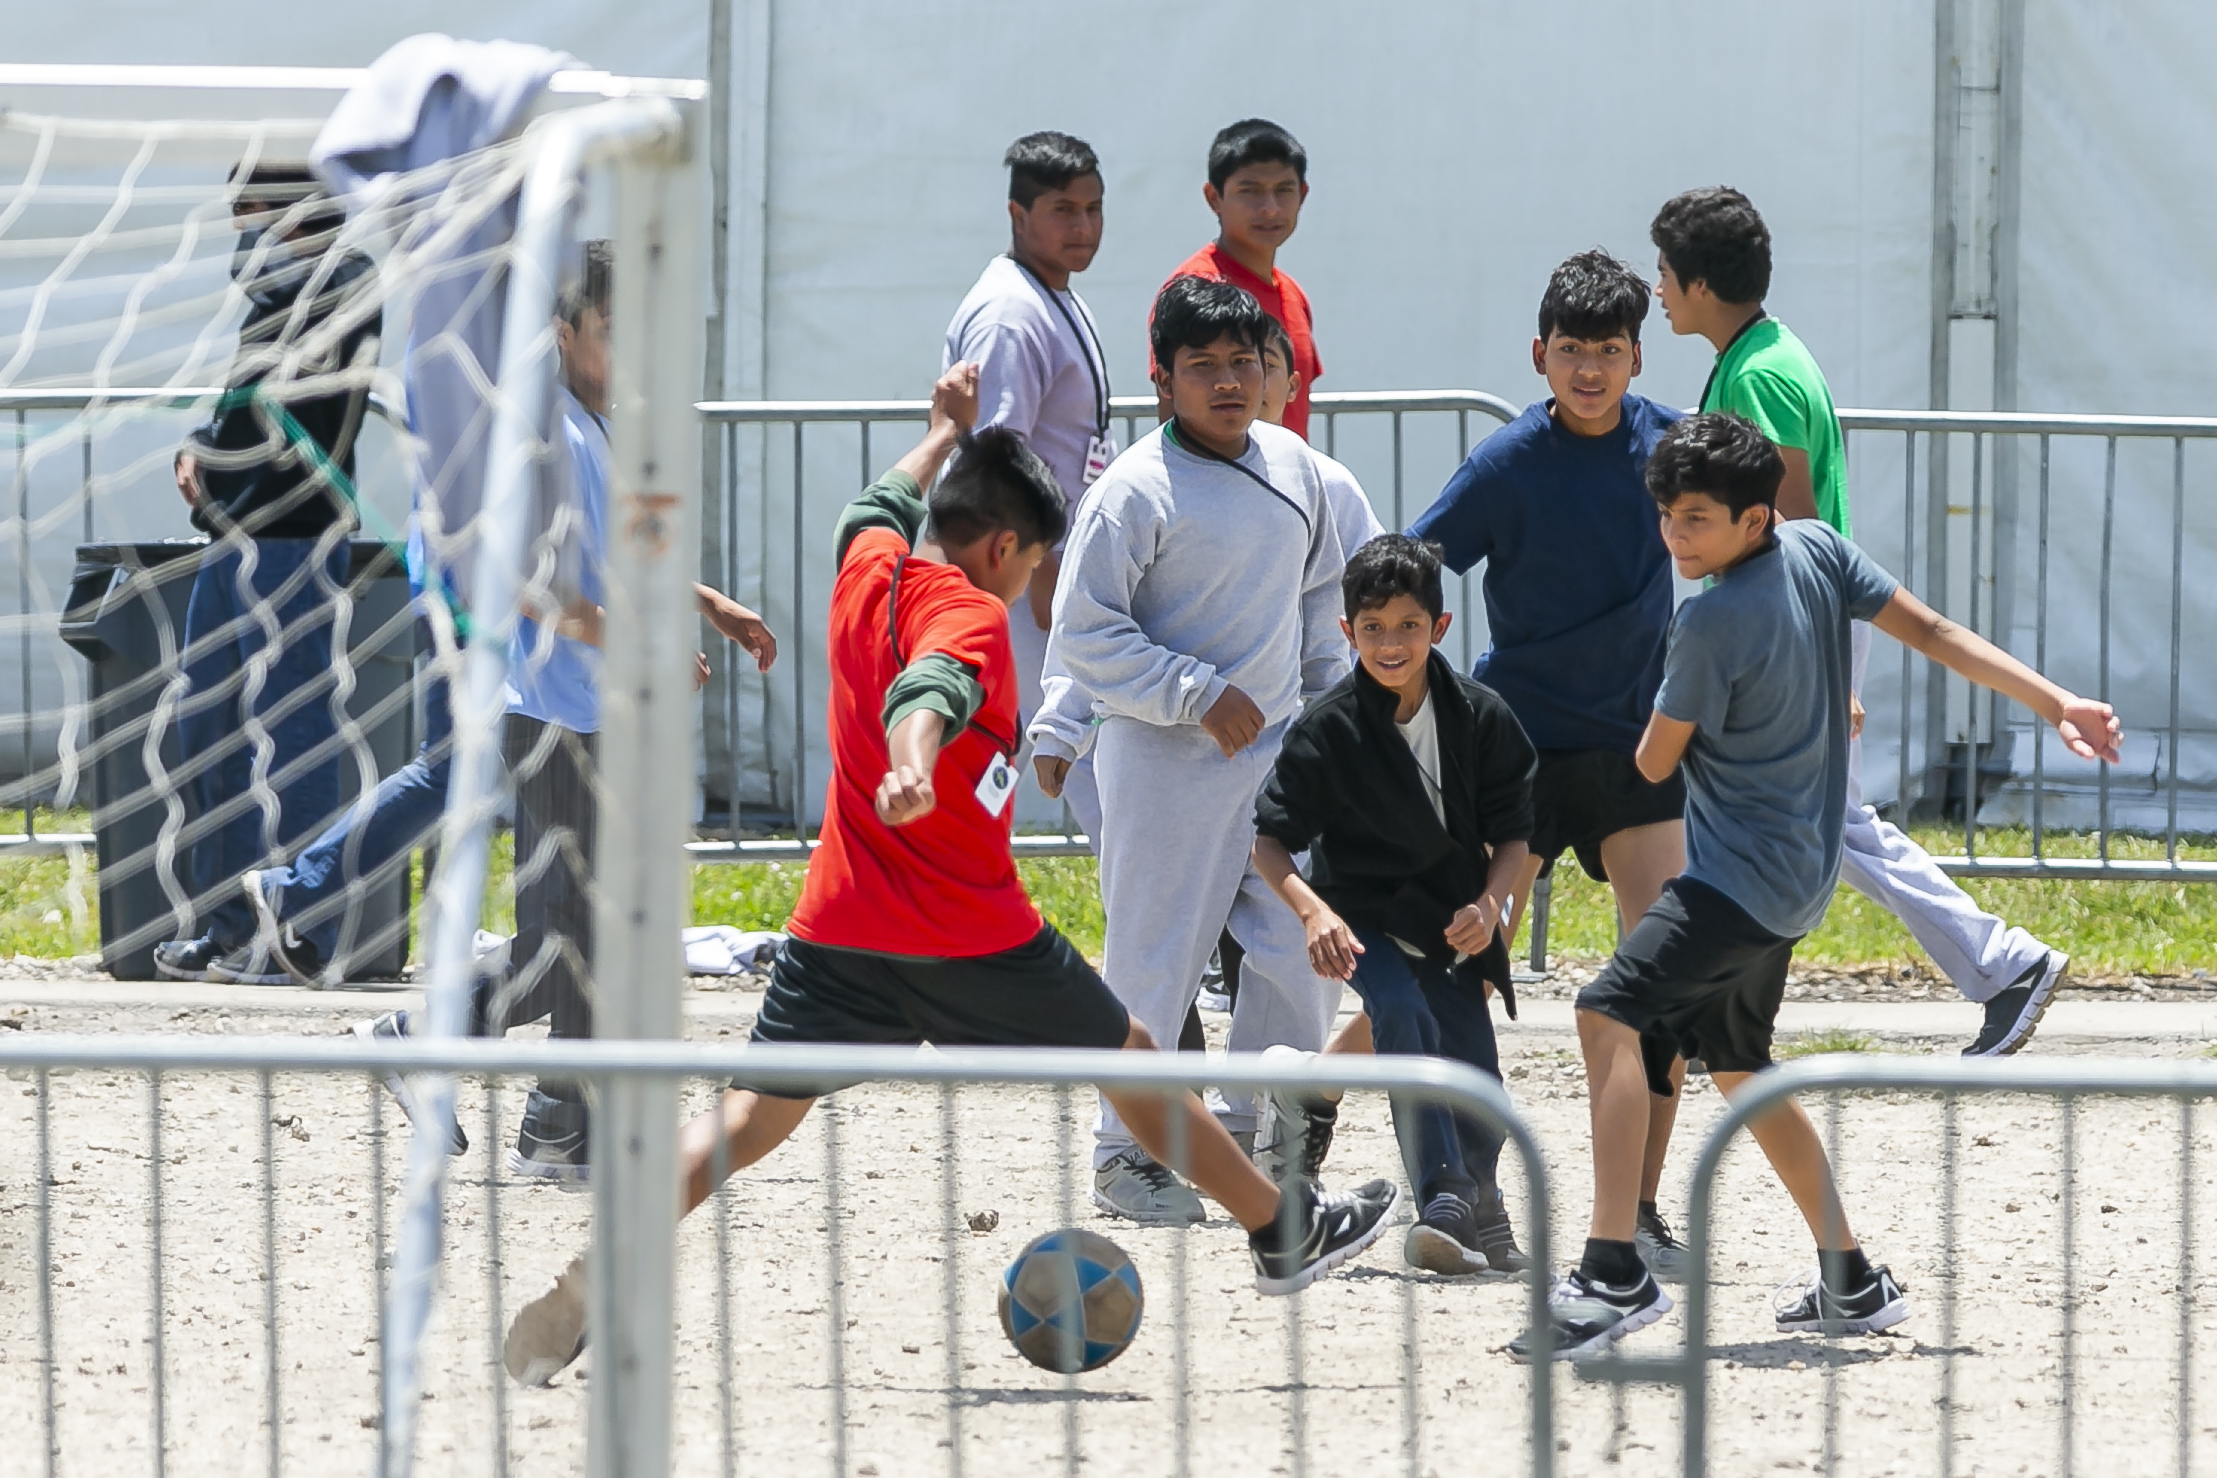 Migrant children play soccer inside the Homestead Temporary Shelter for Unaccompanied Children on Good Friday in Homestead, Florida on April 19, 2019.